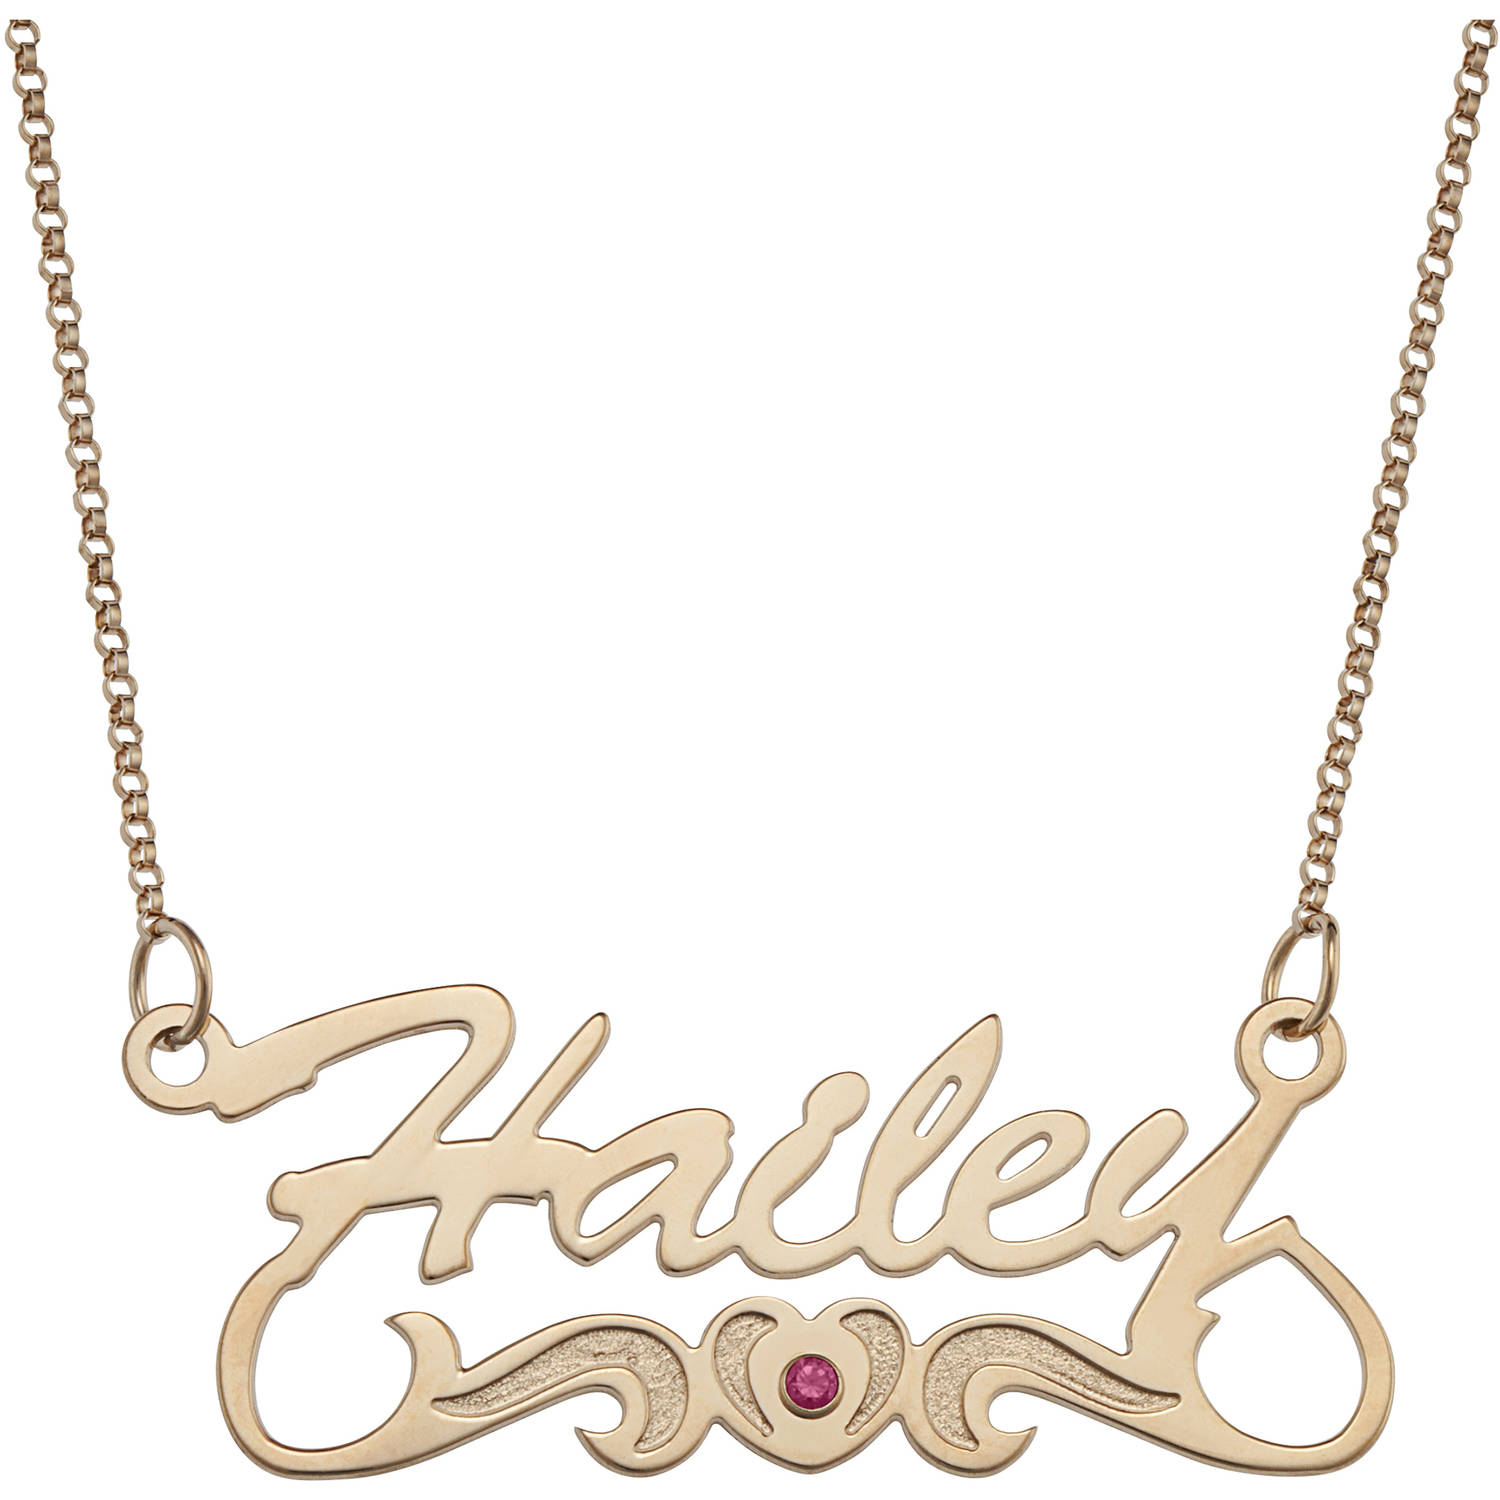 Personalized Script Name with Birthstone Heart Tail 14kt Gold-Plated Necklace, 18""